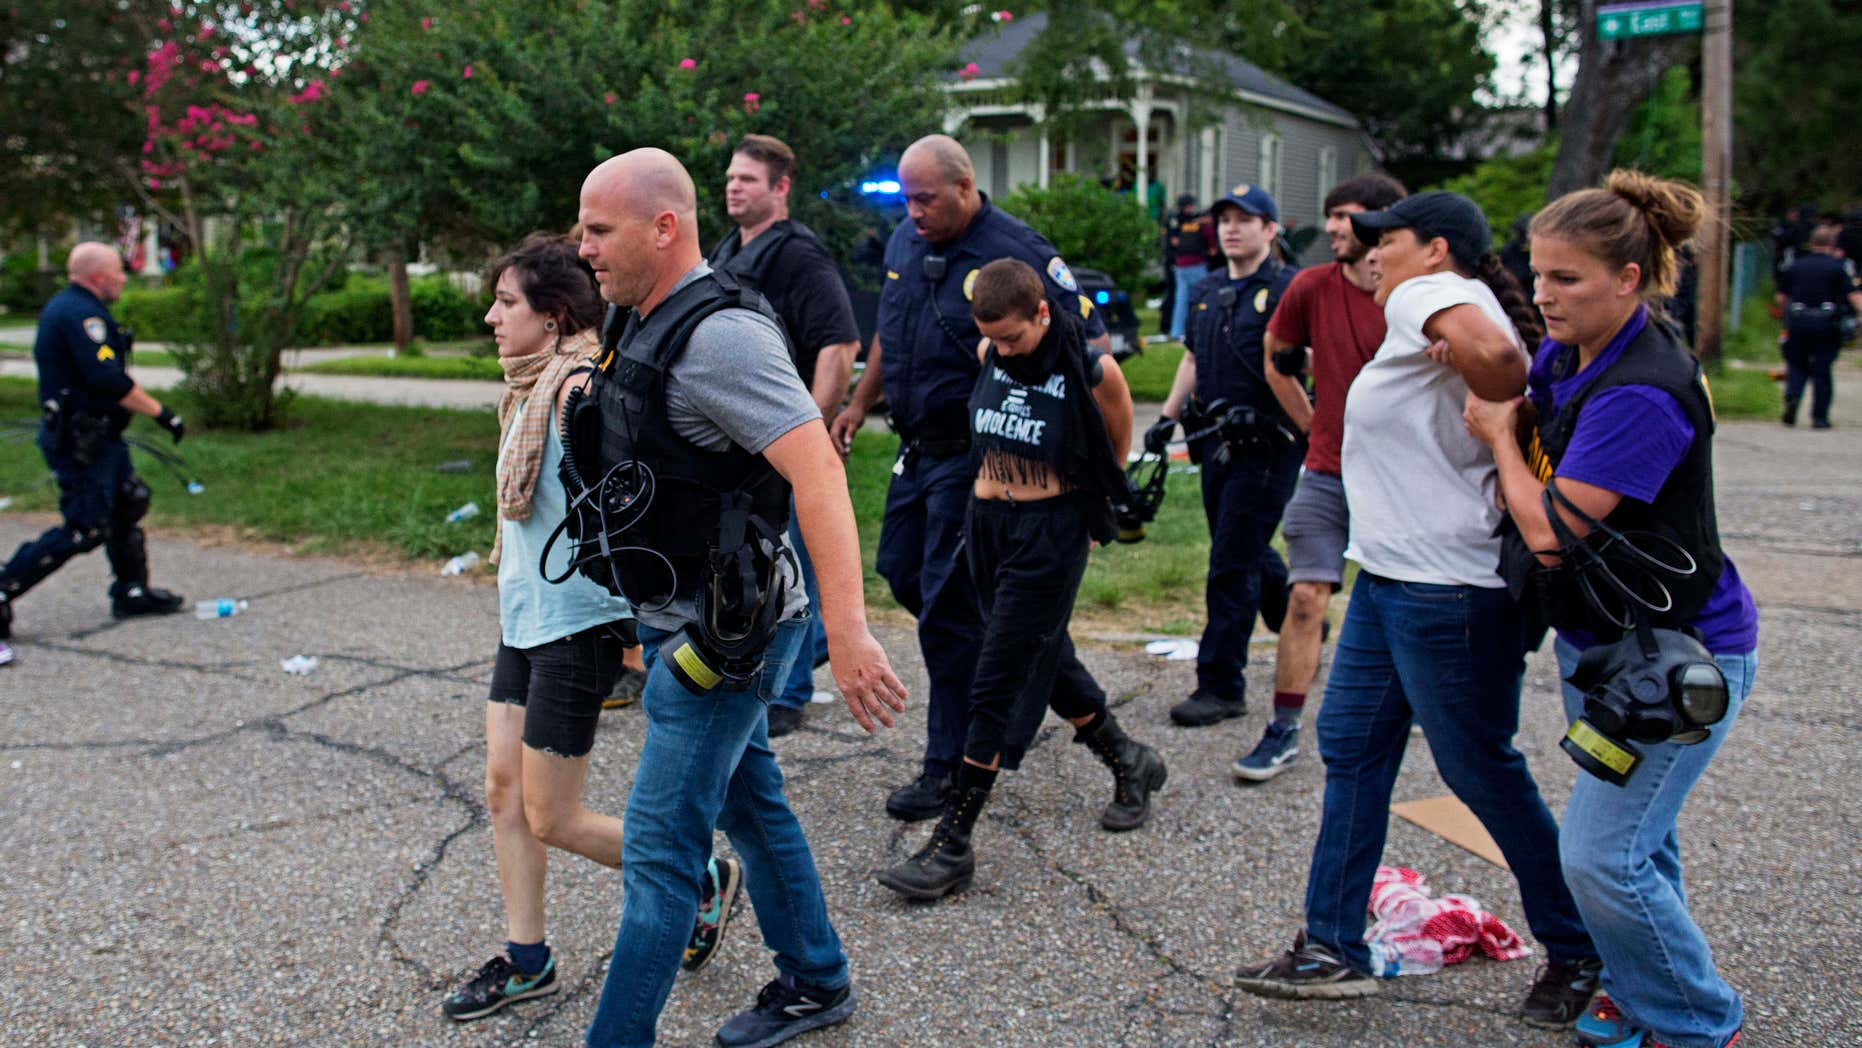 July 10, 2016: Police arrest protesters in a residential neighborhood in Baton Rouge, La.